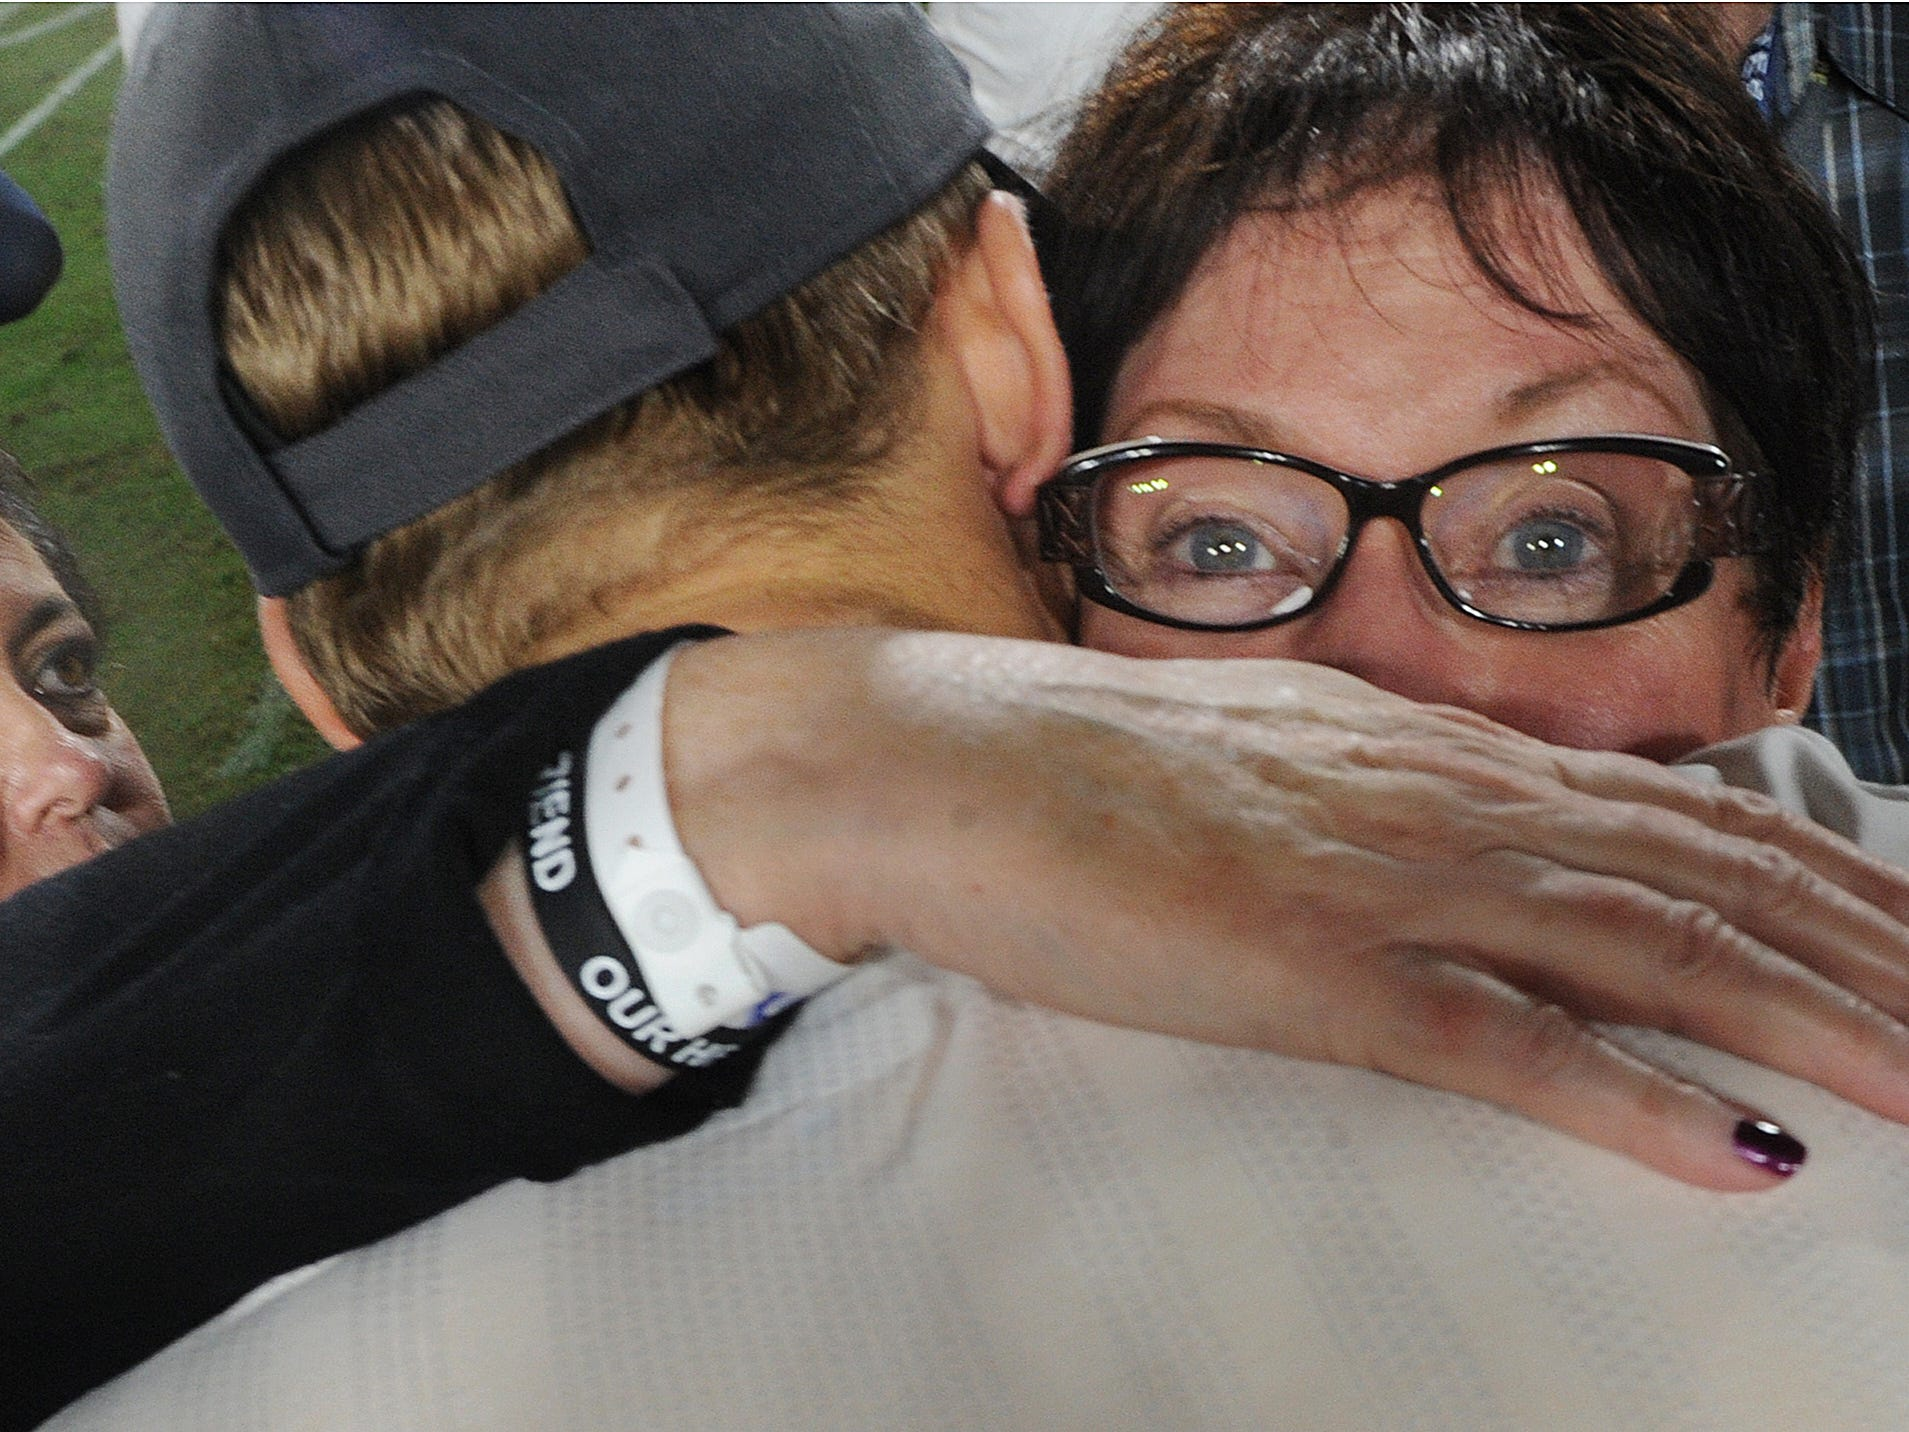 Rams quarterback Jared Goff, hugs Pam Archie, right, mother of Karen Helus, left, who is the wife of Ventura County Sheriff's Department Sgt. Ron Helus, after the Monday night's game against the Chiefs. Sgt. Helus was killed at the Borderline Bar & Grill shooting.